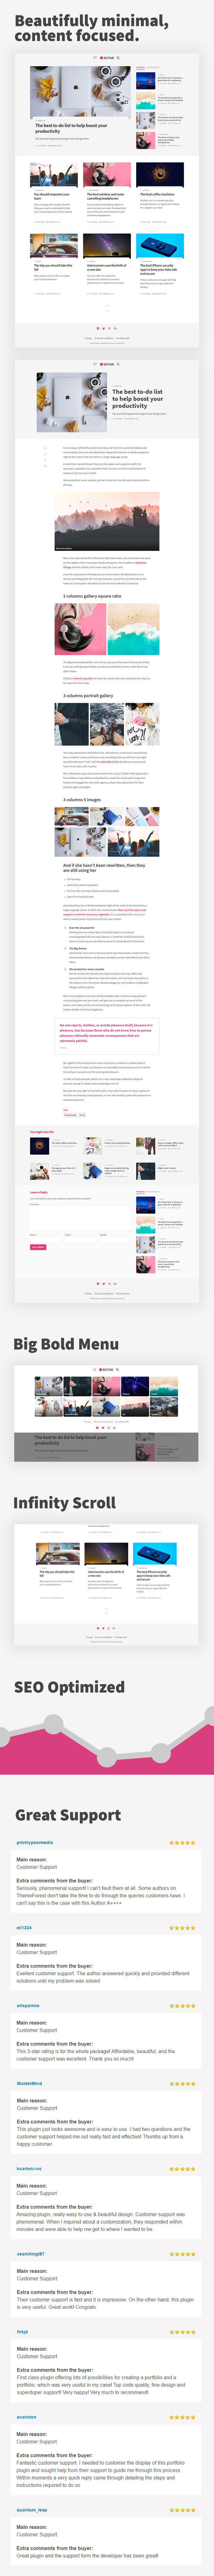 Kutak – Creative Blog & Minimal Magazine WordPress Theme (Blog / Magazine)